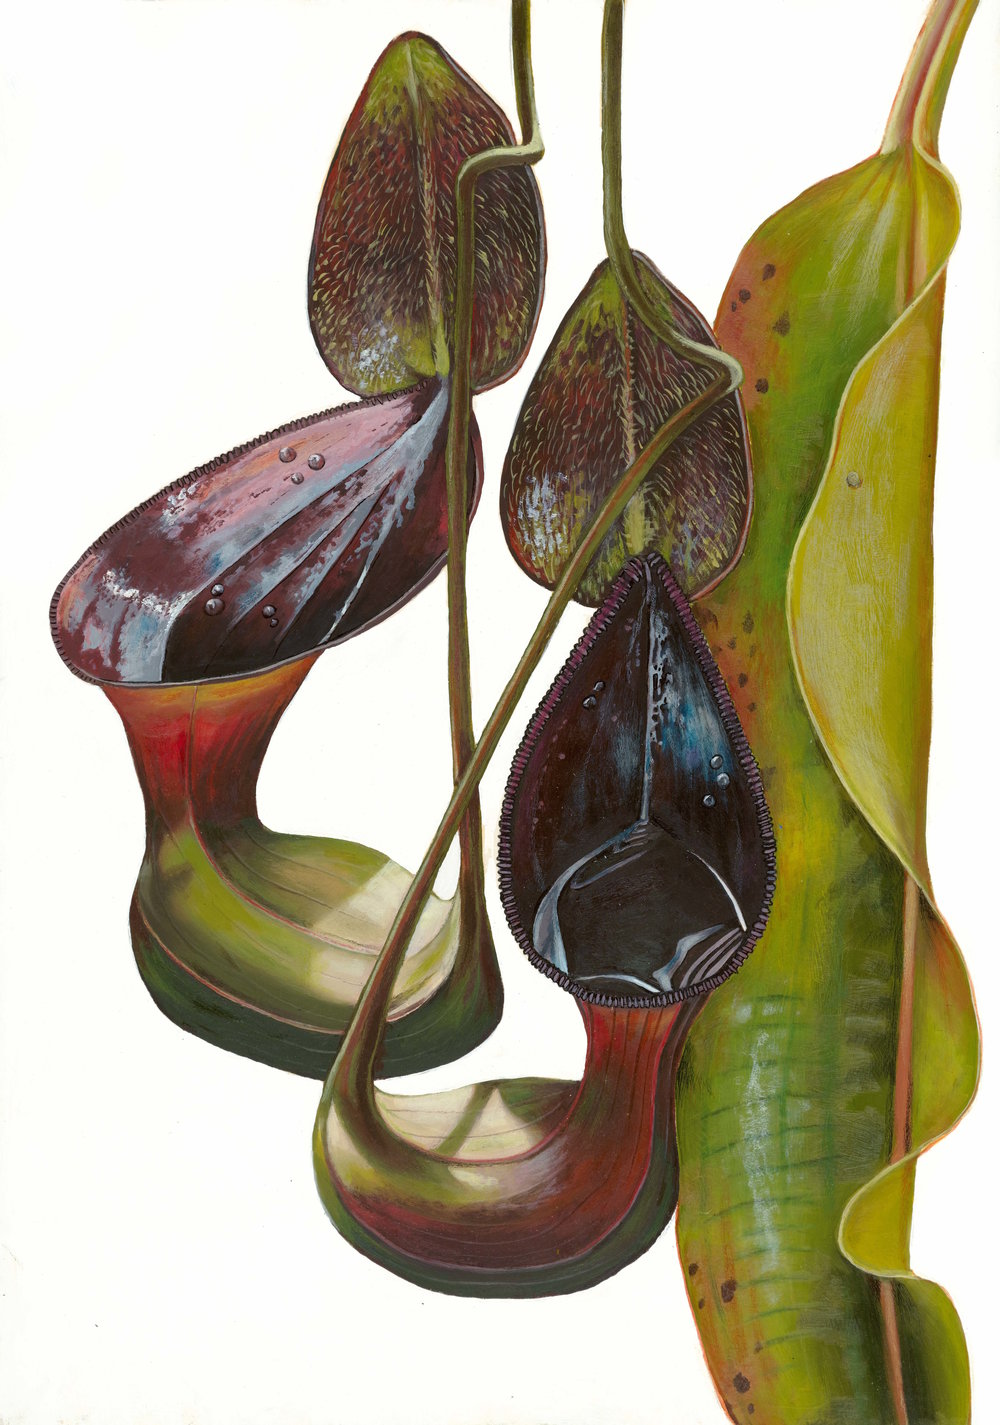 Tree shrew toilet: Low's pitcher plant. Painting by Chris Thorogood.